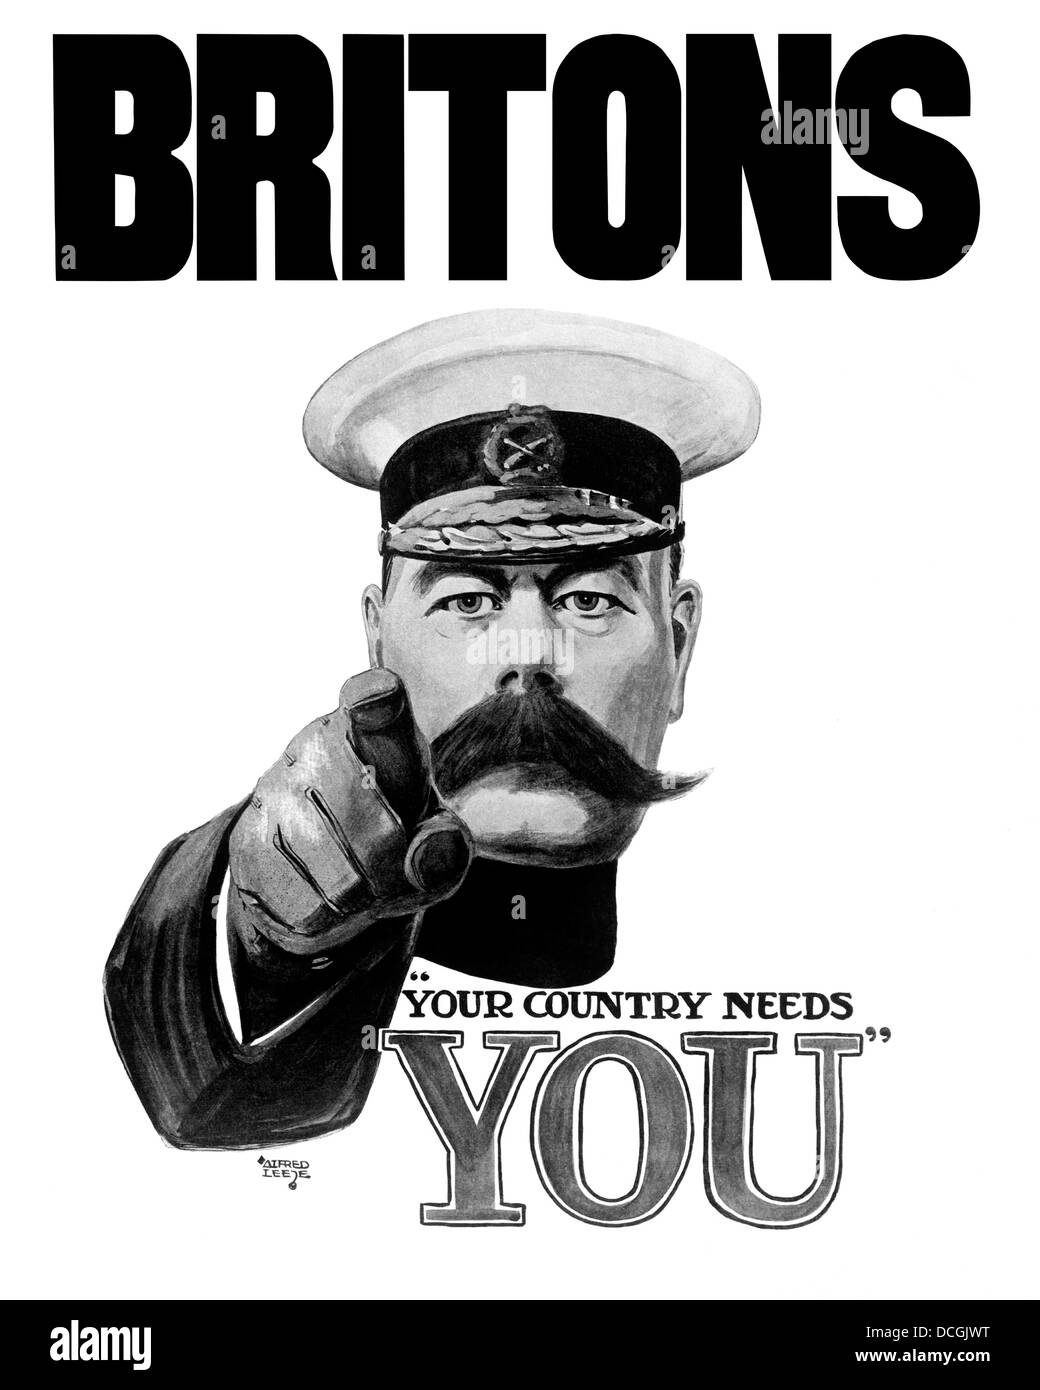 English World War I propaganda poster featuring Lord Kitchener. - Stock Image